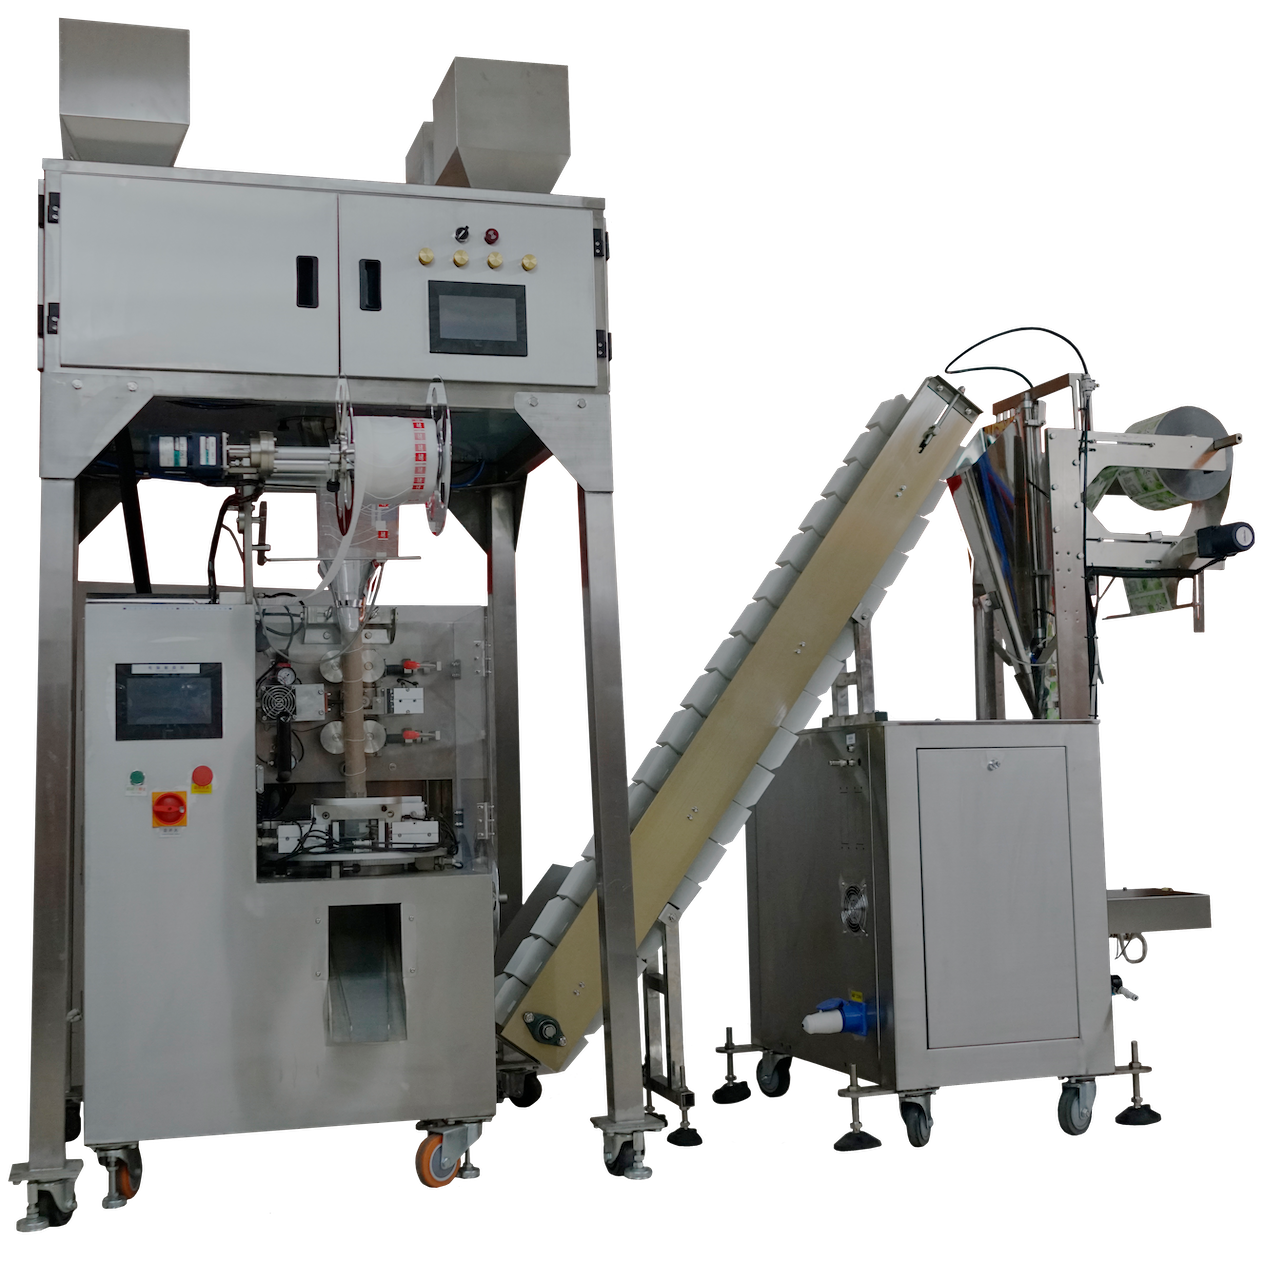 Nylon Pyramided And Triangle Tea Bag Packing Machine Manufacturers, Nylon Pyramided And Triangle Tea Bag Packing Machine Factory, Supply Nylon Pyramided And Triangle Tea Bag Packing Machine